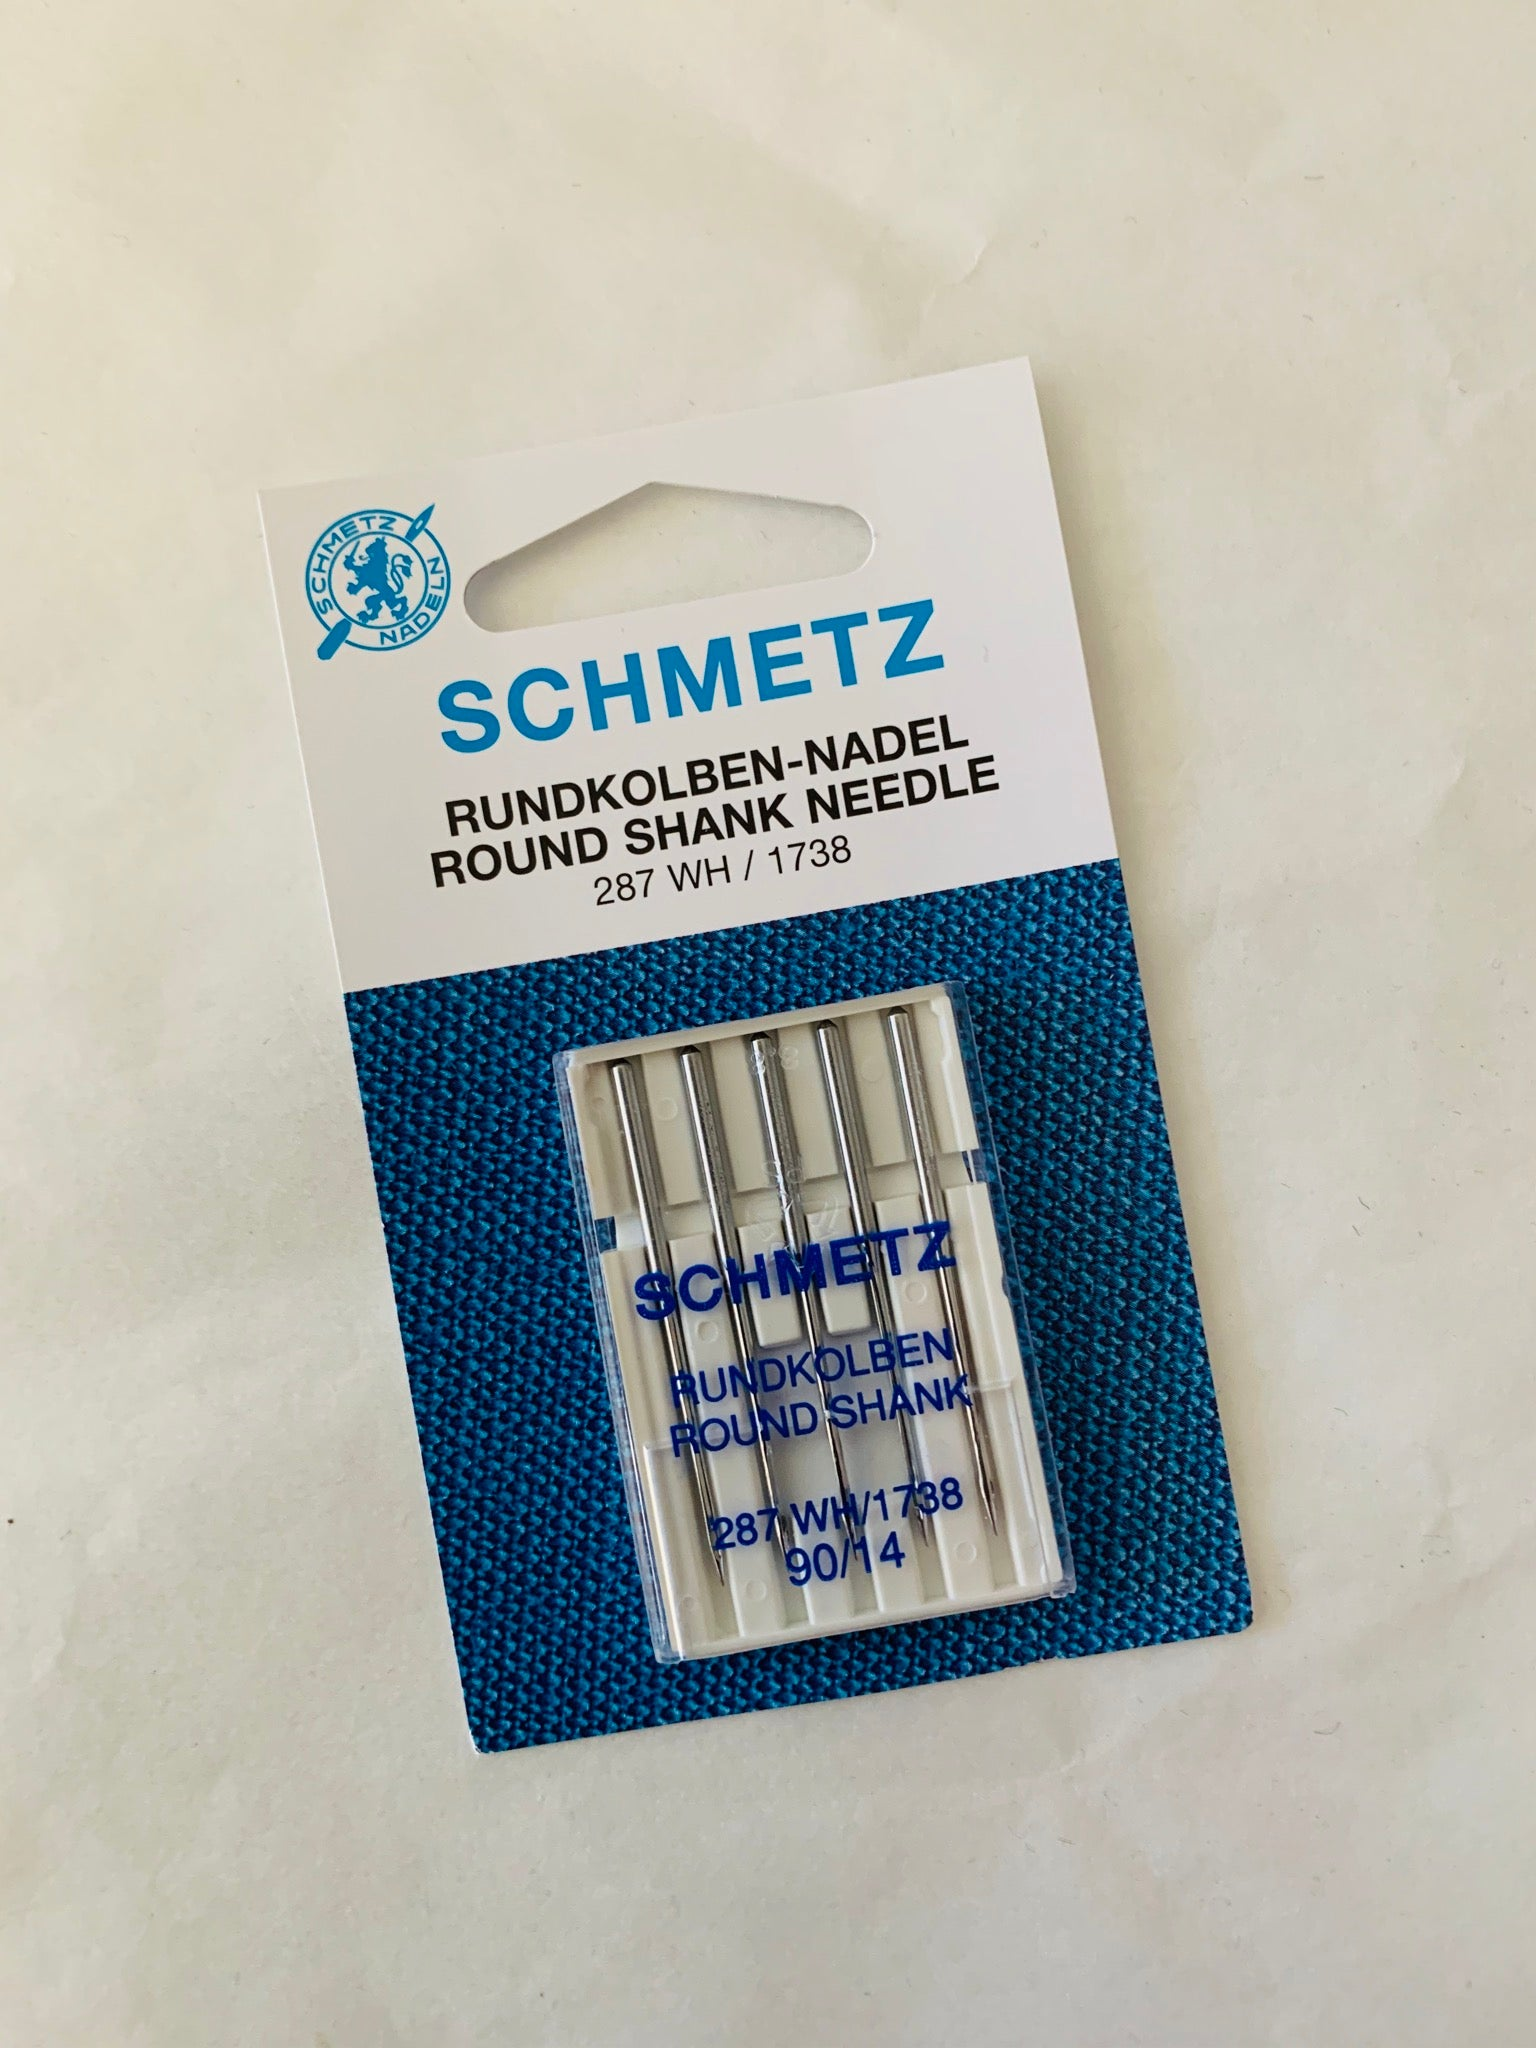 Schmetz sewing machine needles: Round Shank 90/14